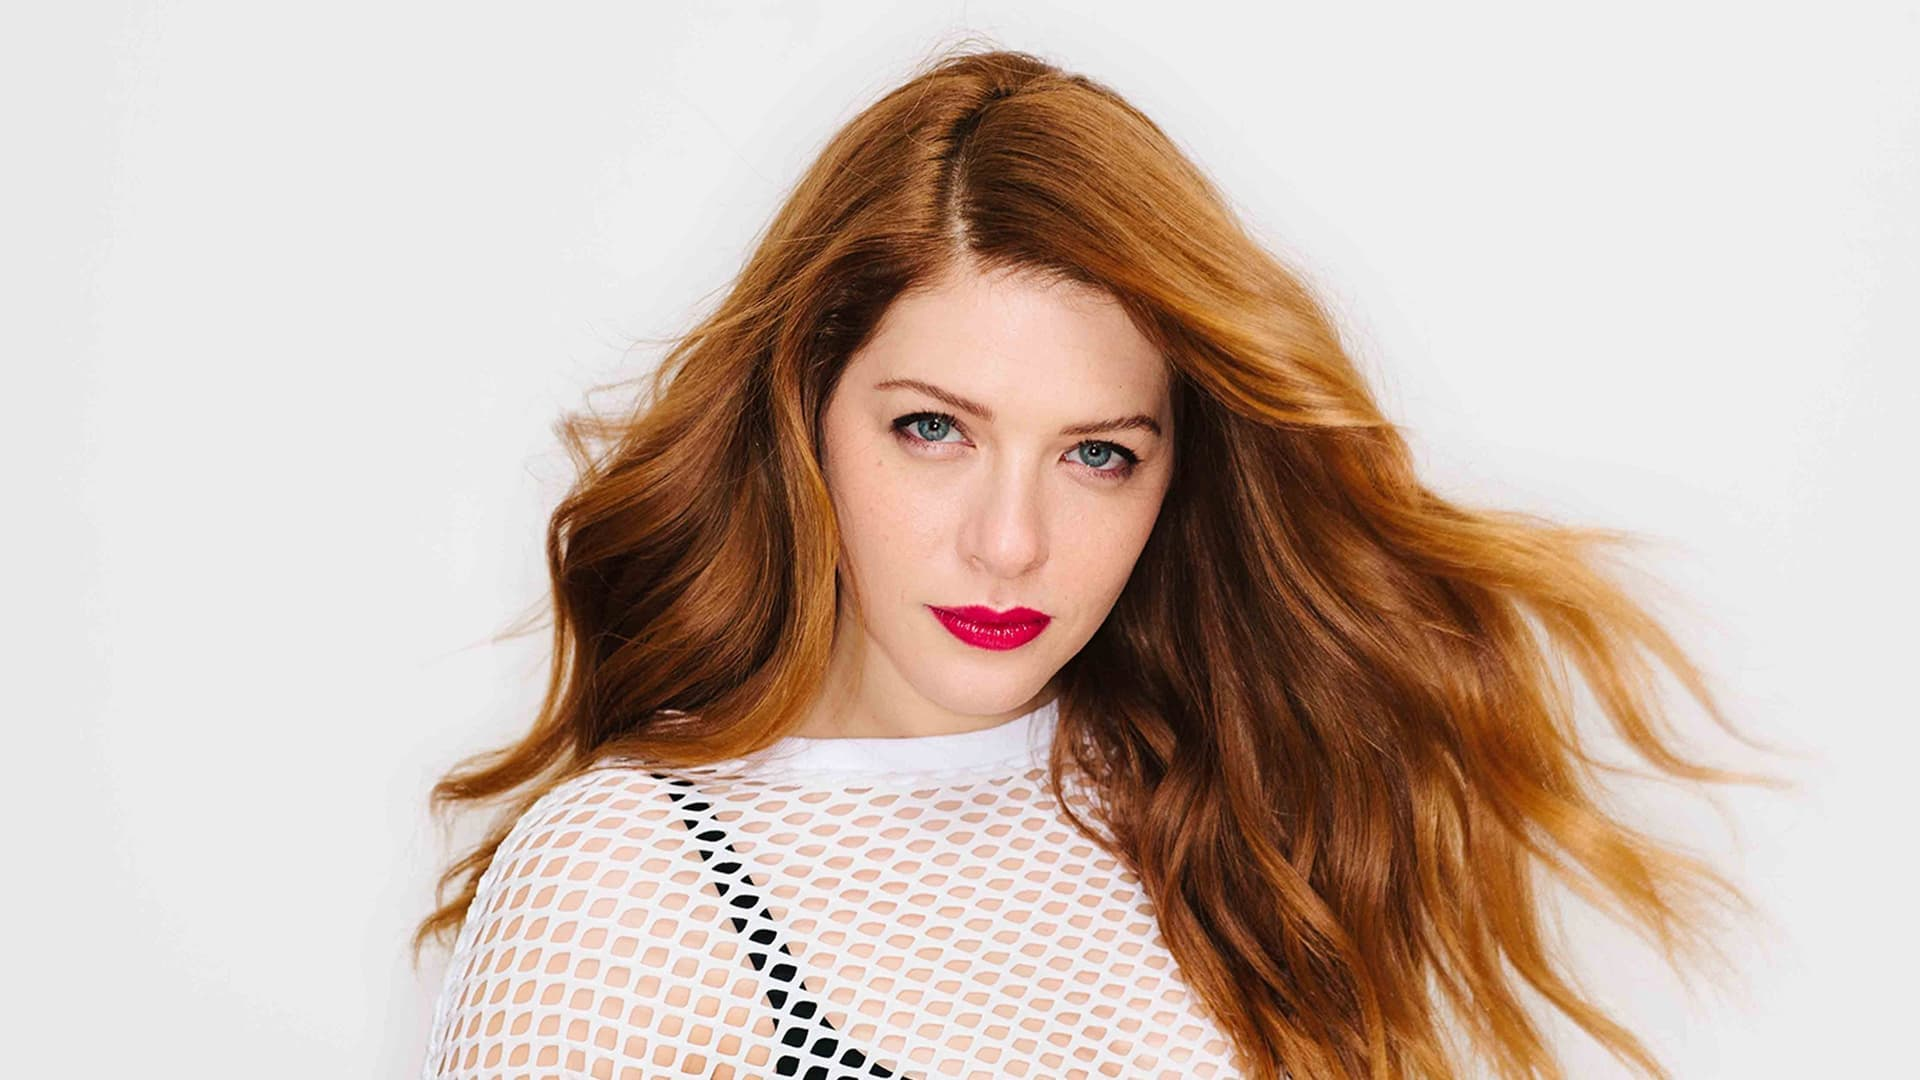 best hollywood actresses, famous hollywood stars, female hollywood stars, hollywood celebrities, hot hollywood actresses, hottest celebrities, most famous hollywood actresses, Rachelle Lefevre age, Rachelle Lefevre bikini, Rachelle Lefevre boyfriend, Rachelle Lefevre bra size, Rachelle Lefevre breast size, Rachelle Lefevre dress size, Rachelle Lefevre eyes color, Rachelle Lefevre favorite exercise, Rachelle Lefevre favorite food, Rachelle Lefevre favorite perfume, Rachelle Lefevre favorite sport, Rachelle Lefevre feet size, Rachelle Lefevre full-body statistics, Rachelle Lefevre height, Rachelle Lefevre instagram, Rachelle Lefevre Measurements, Rachelle Lefevre movies, Rachelle Lefevre net worth, Rachelle Lefevre personal info, Rachelle Lefevre shoe, Rachelle Lefevre wallpapers, Rachelle Lefevre weight, top female hollywood stars